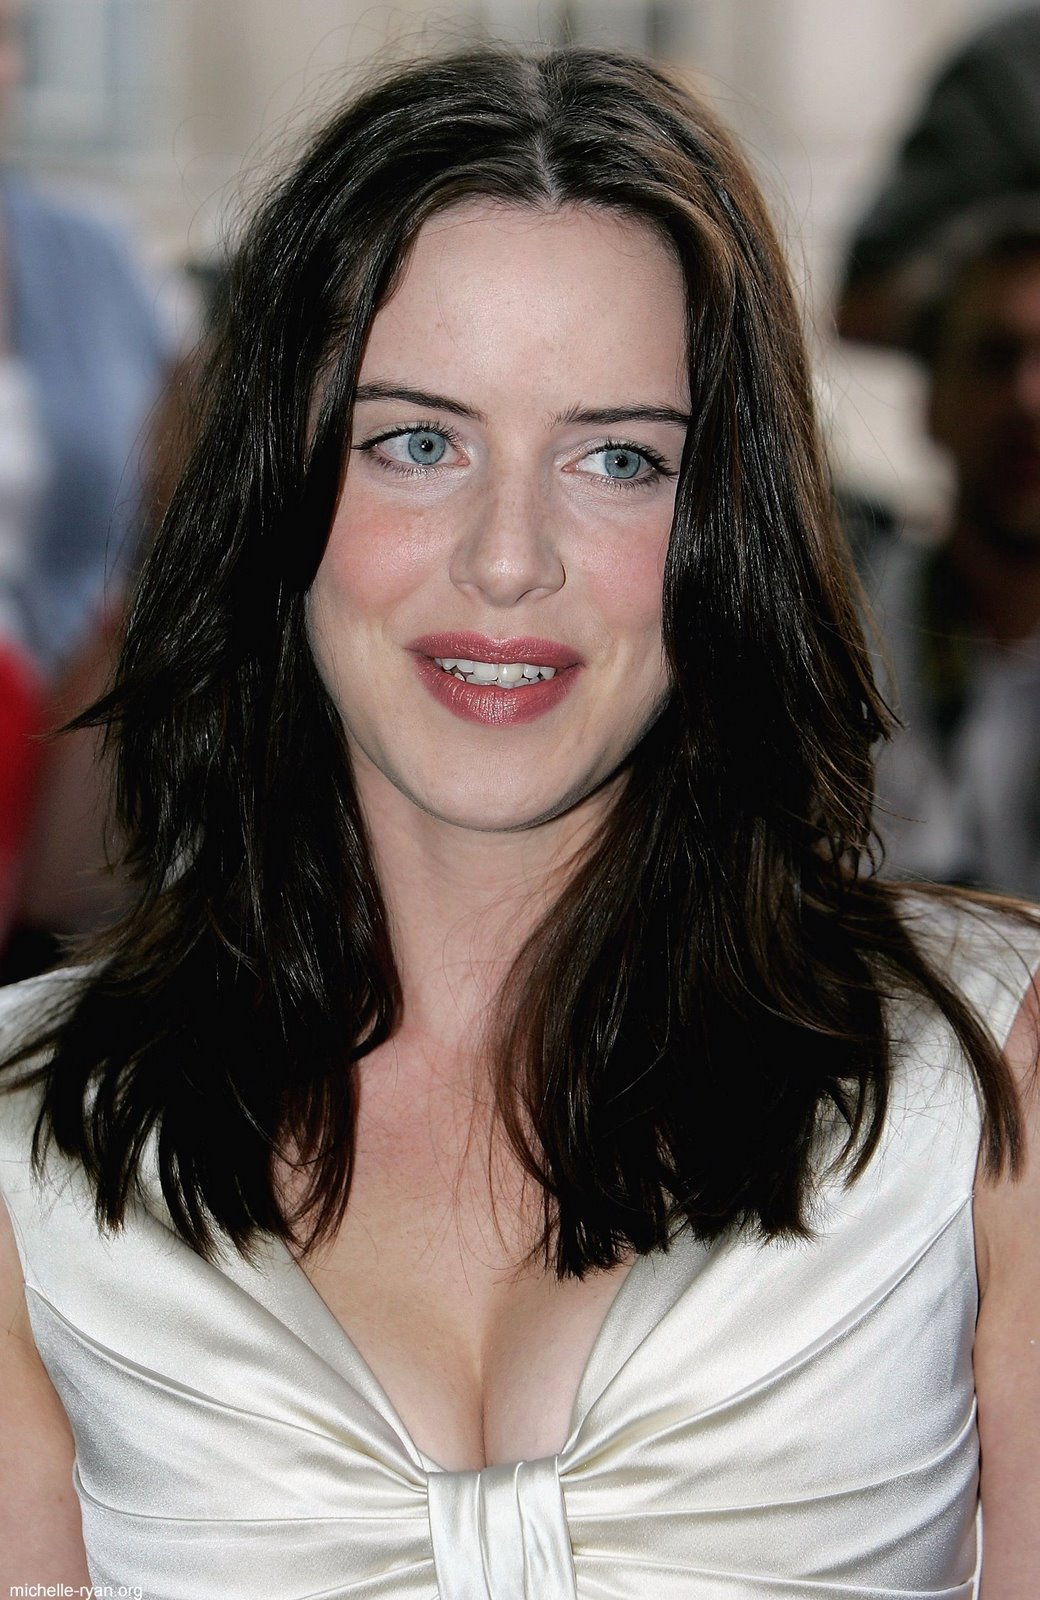 michelle ryan imdbmichelle ryan wiki, michelle ryan instagram, michelle ryan actress, michelle ryan cashback, michelle ryan doctor who, michelle ryan, michelle ryan twitter, michelle ryan imdb, michelle ryan facebook, michelle ryan 2015, michelle ryan boyfriend, michelle ryan bionic woman, michelle ryan merlin, michelle ryan 2014, michelle ryan wikifeet